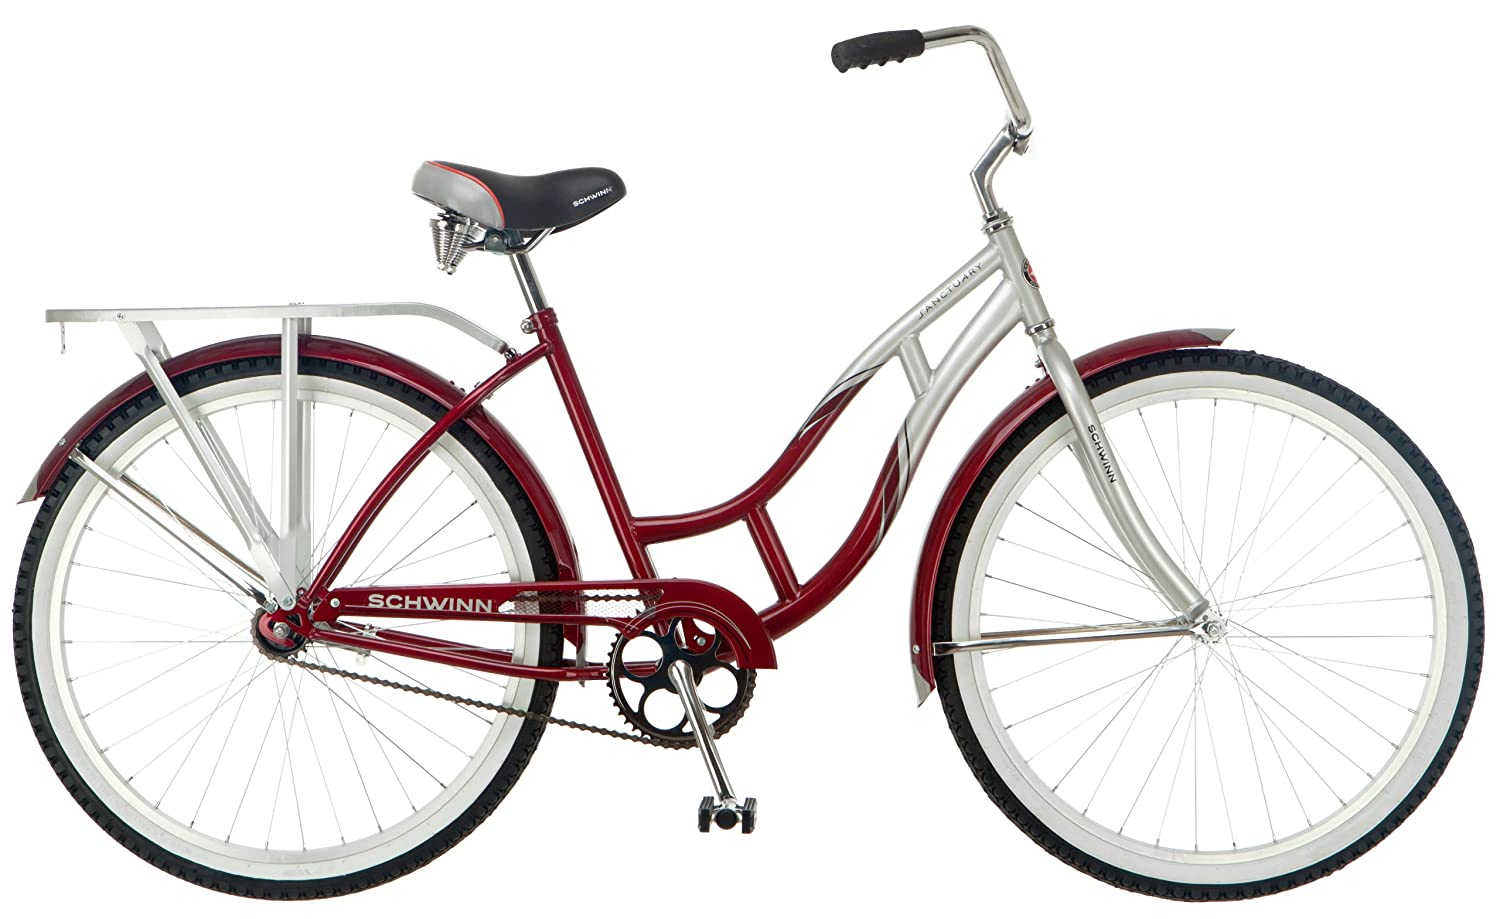 Bikes Schwinn Cruiser Sanctuary Cruiser Bicycle